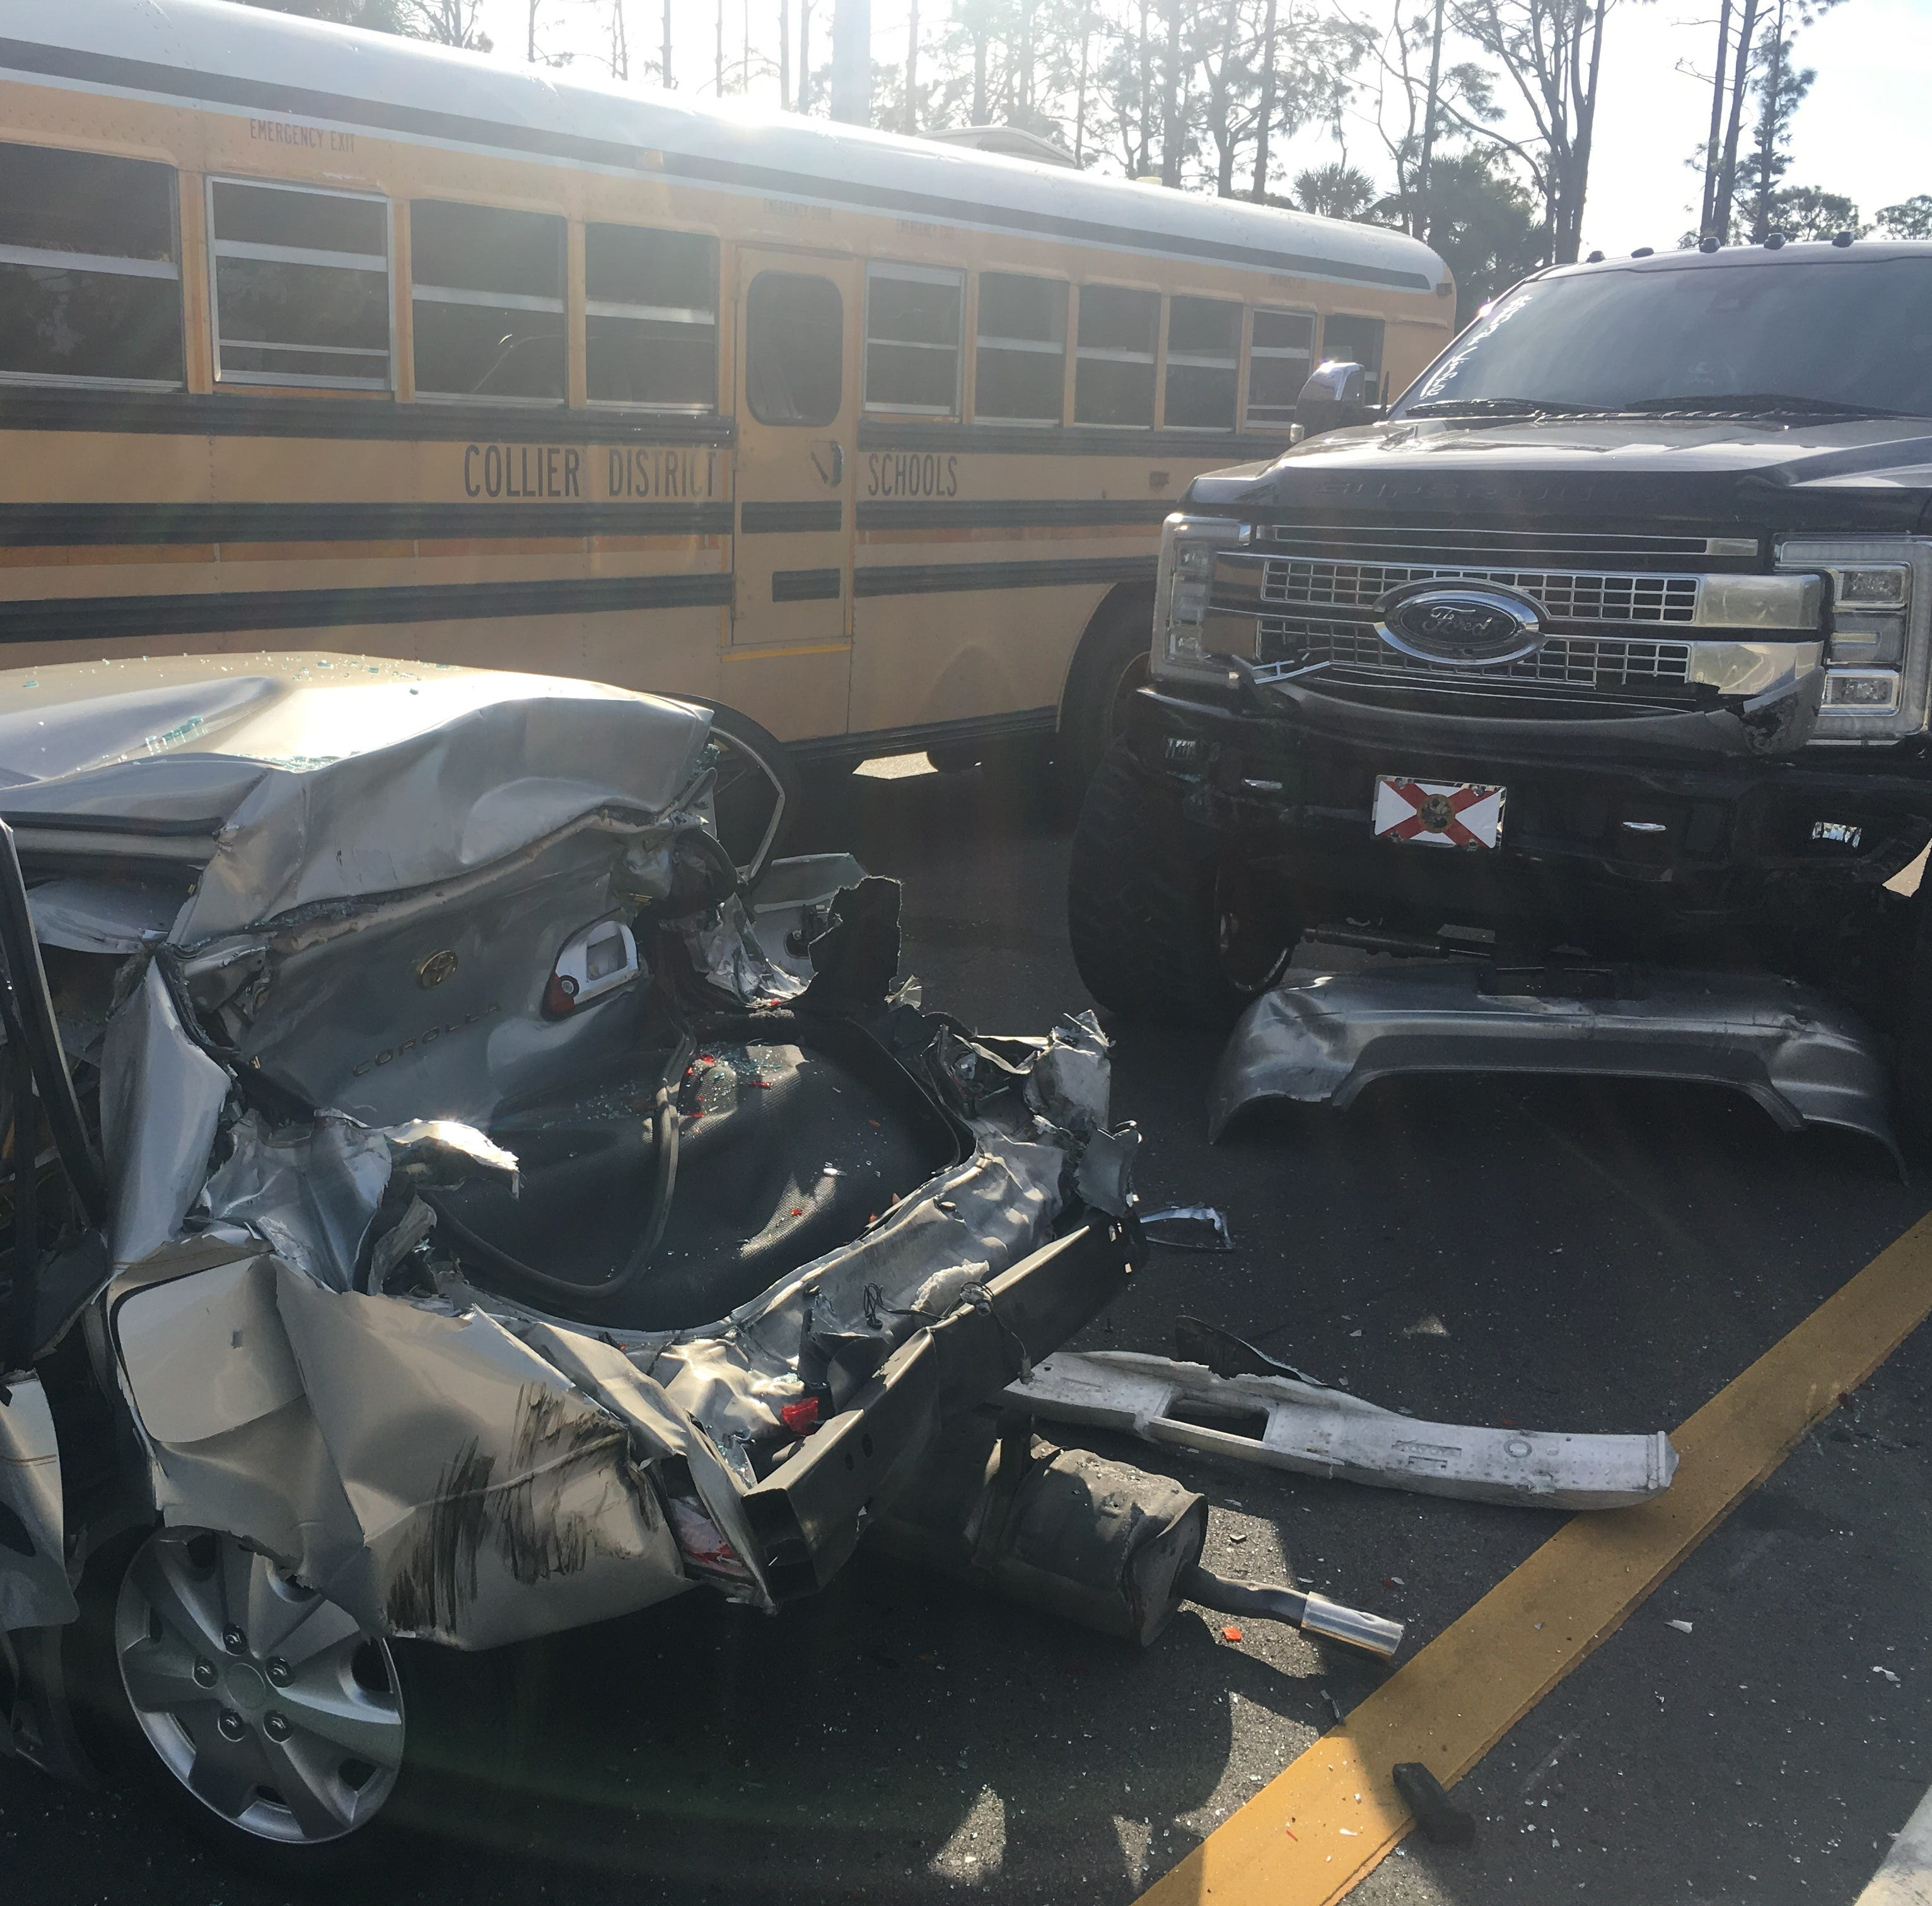 One person injured in Collier County school bus crash